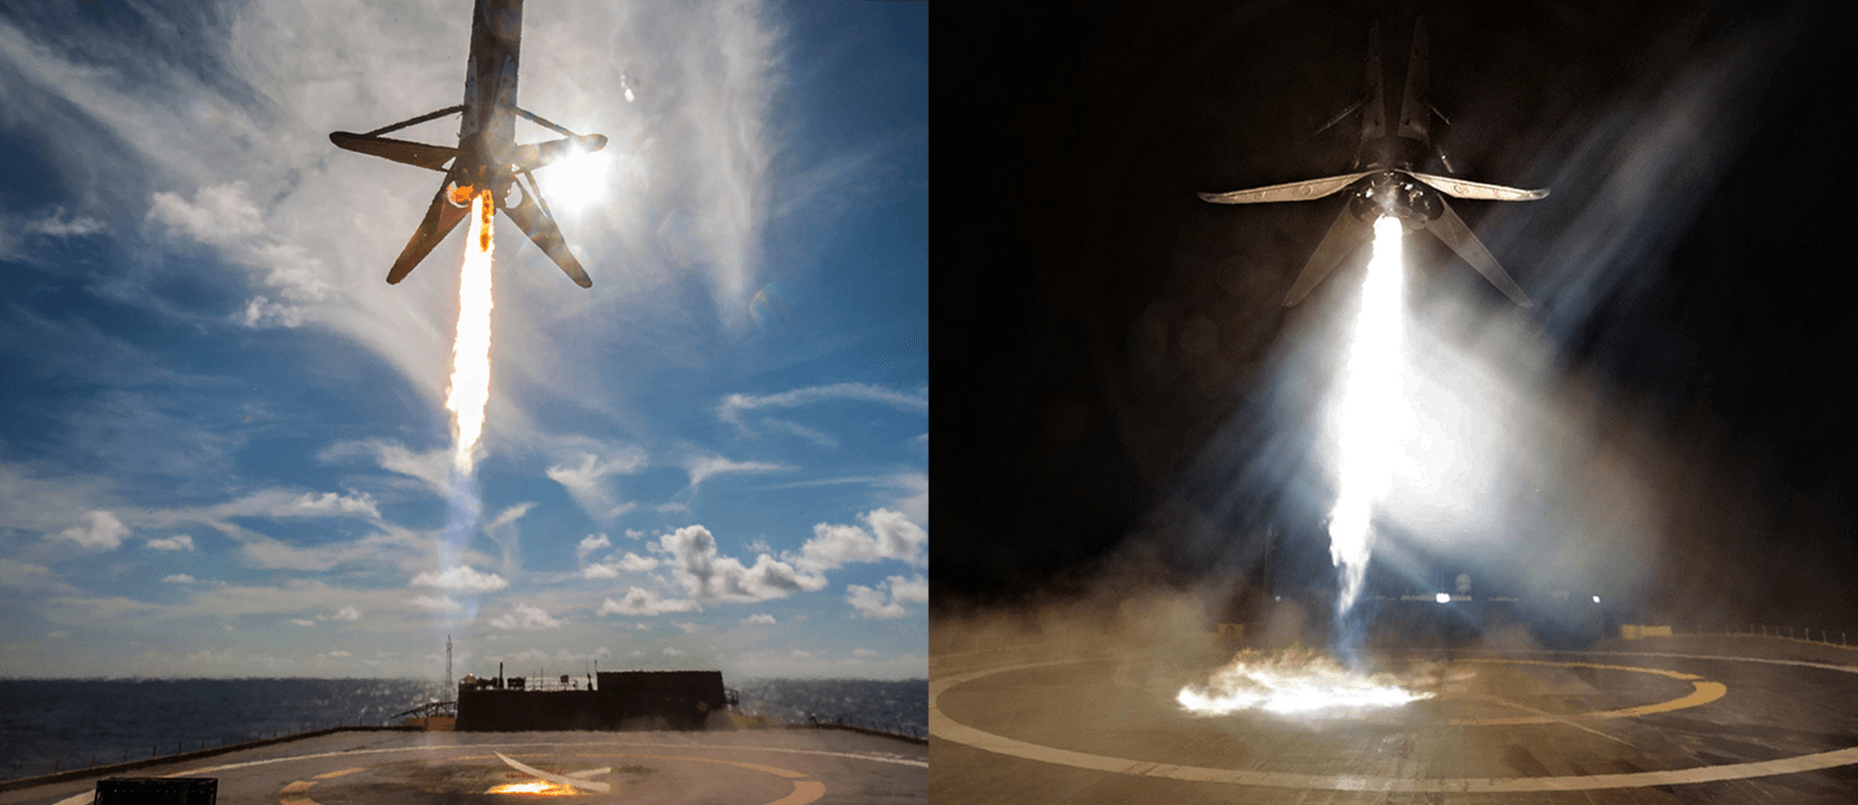 B1046 two landings – three months (SpaceX)